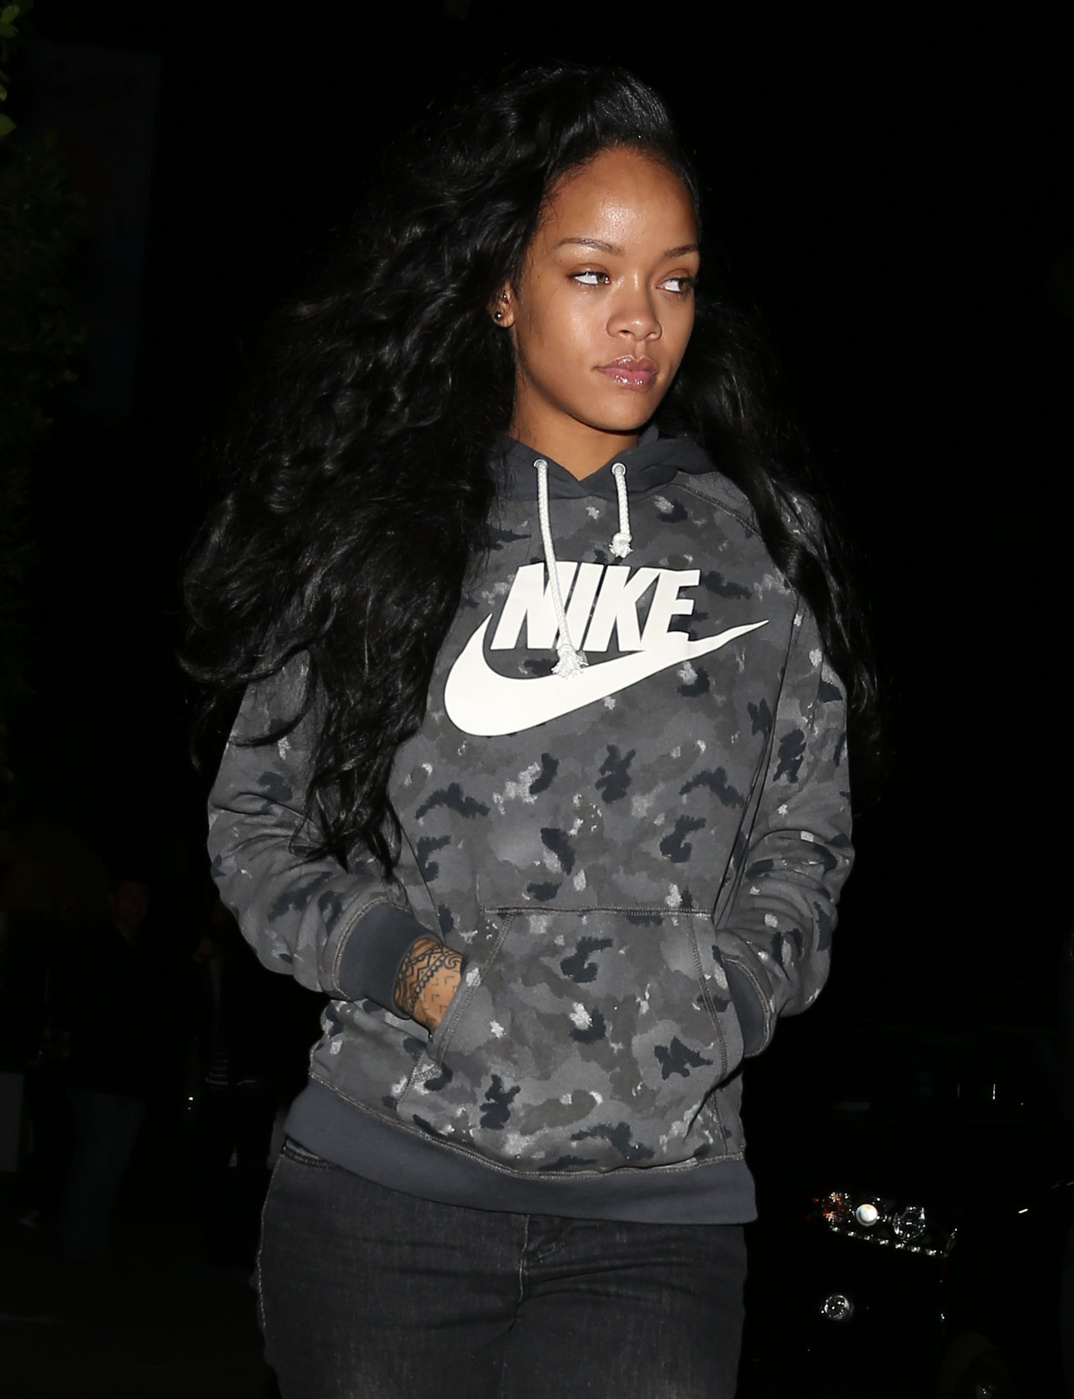 110011, LOS ANGELES, CALIFORNIA - Saturday December 07, 2013. Rihanna seen leaving the Giorgio Baldi restaurant in Los Angeles. Photograph: ? Devone Byrd, PacificCoastNews**FEST BE AGE AGREED PRIOR TO USAGE** **E-TABLET/IPAD & MOBILE PHONE APP PUBLISHING REQUIRES ADDITIONAL FEES** LOS ANGELES OFFICE: +1 310 822 0419 LONDON OFFICE: +44 20 8090 4079